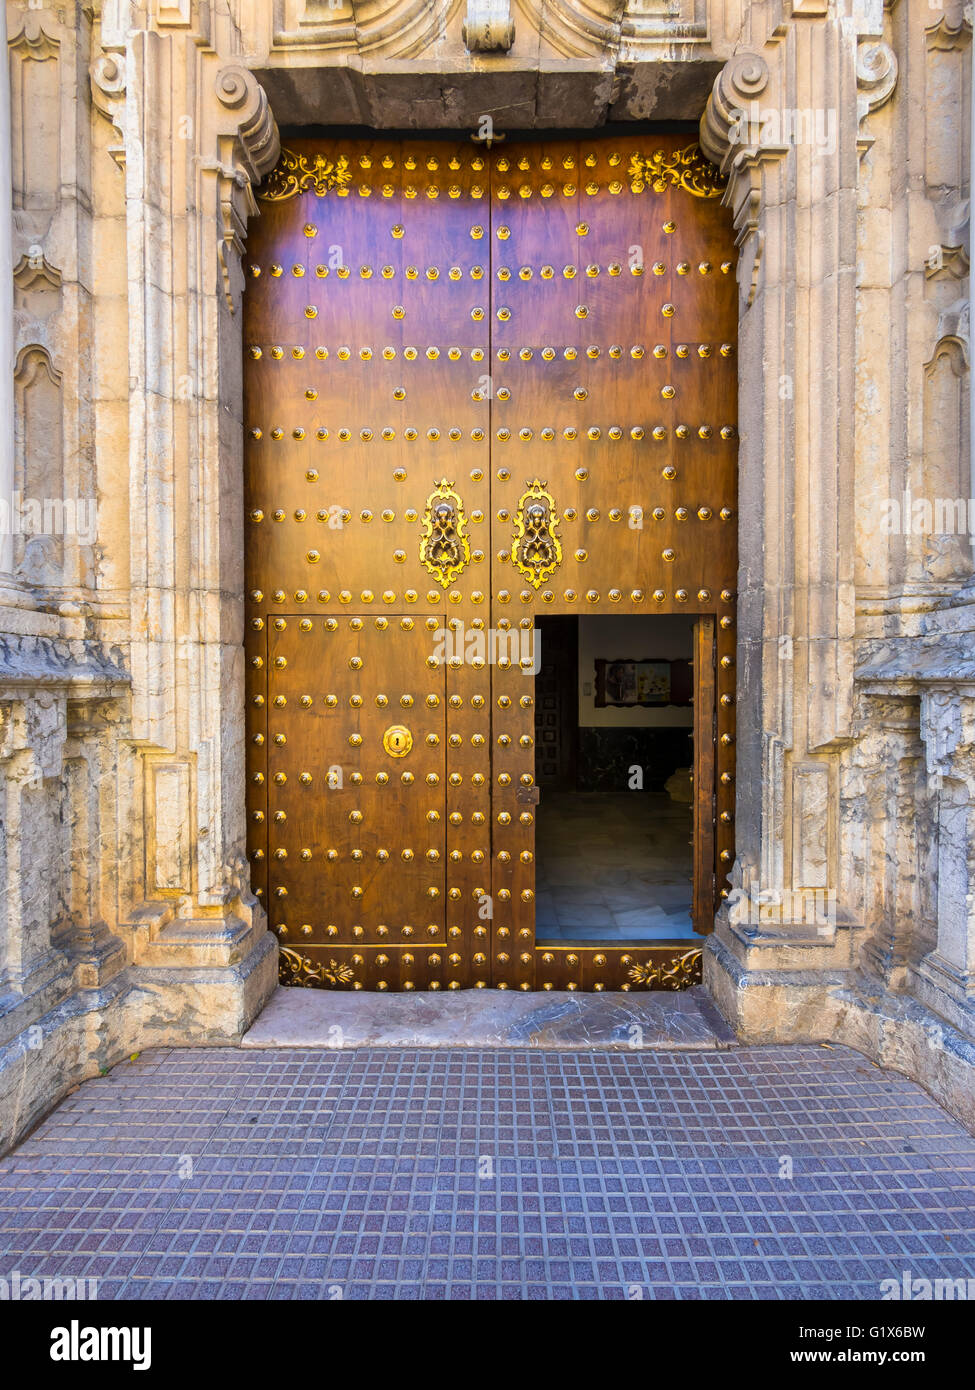 Old wooden gate with fitting, historic centre, Cordoba province, Andalucía, Spain - Stock Image